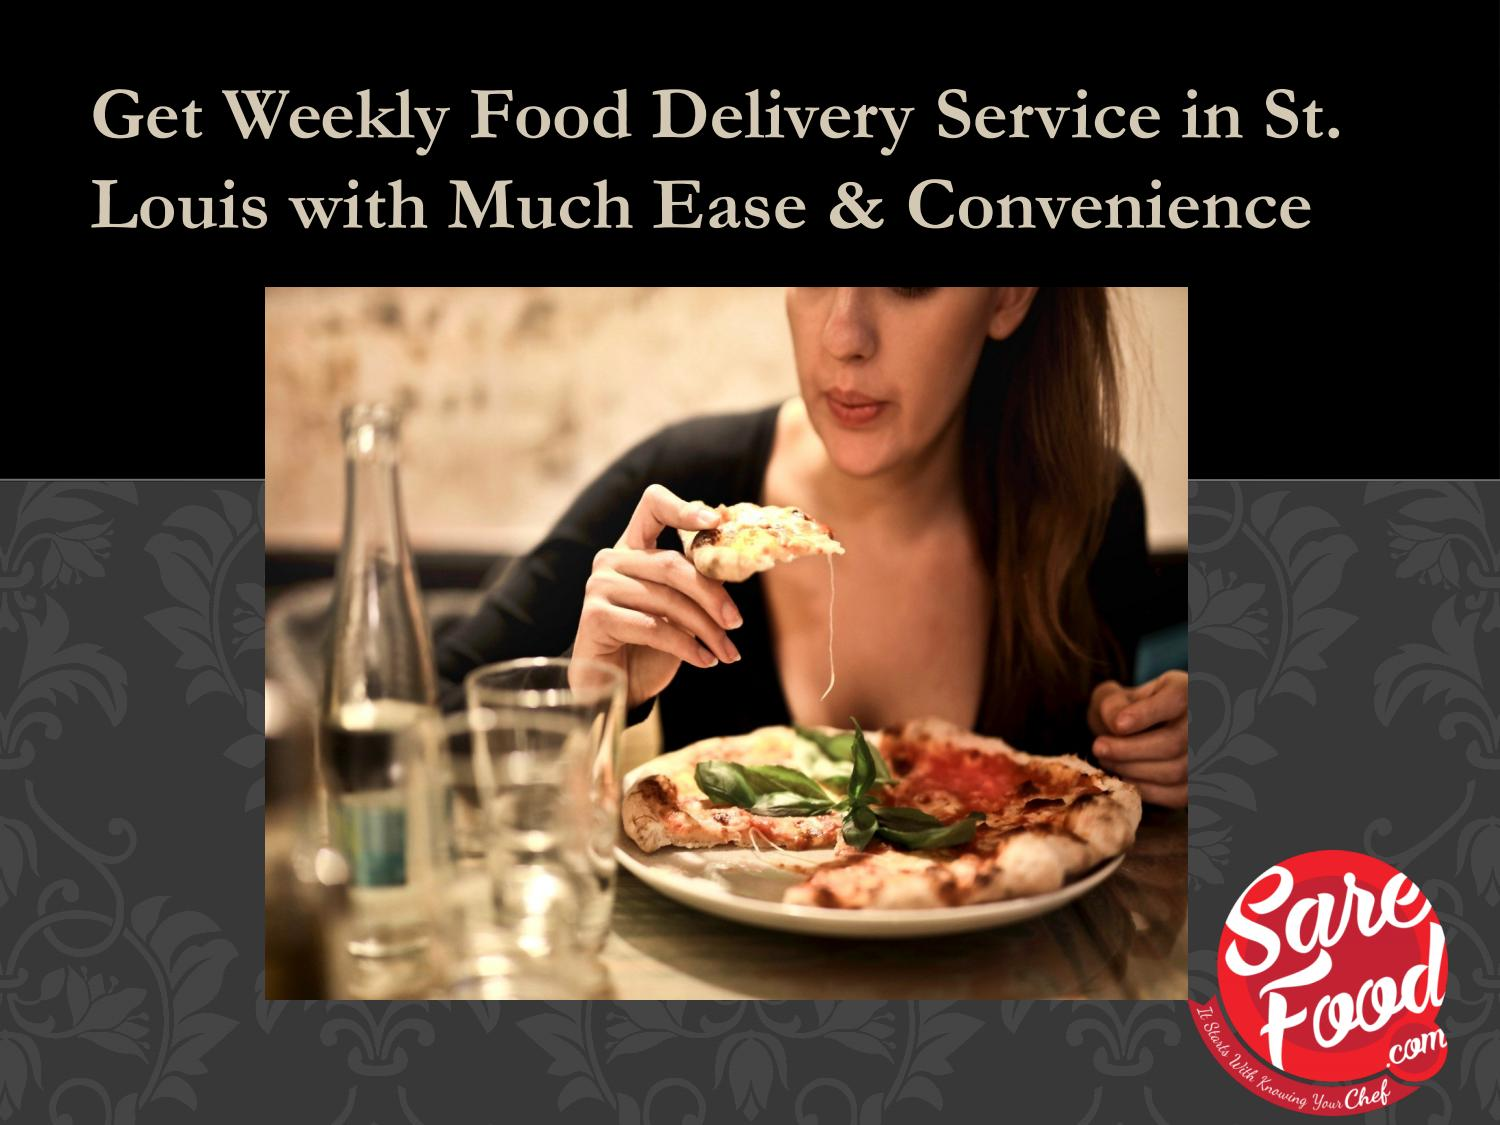 Get Weekly Food Delivery Service In St Louis With Much Ease